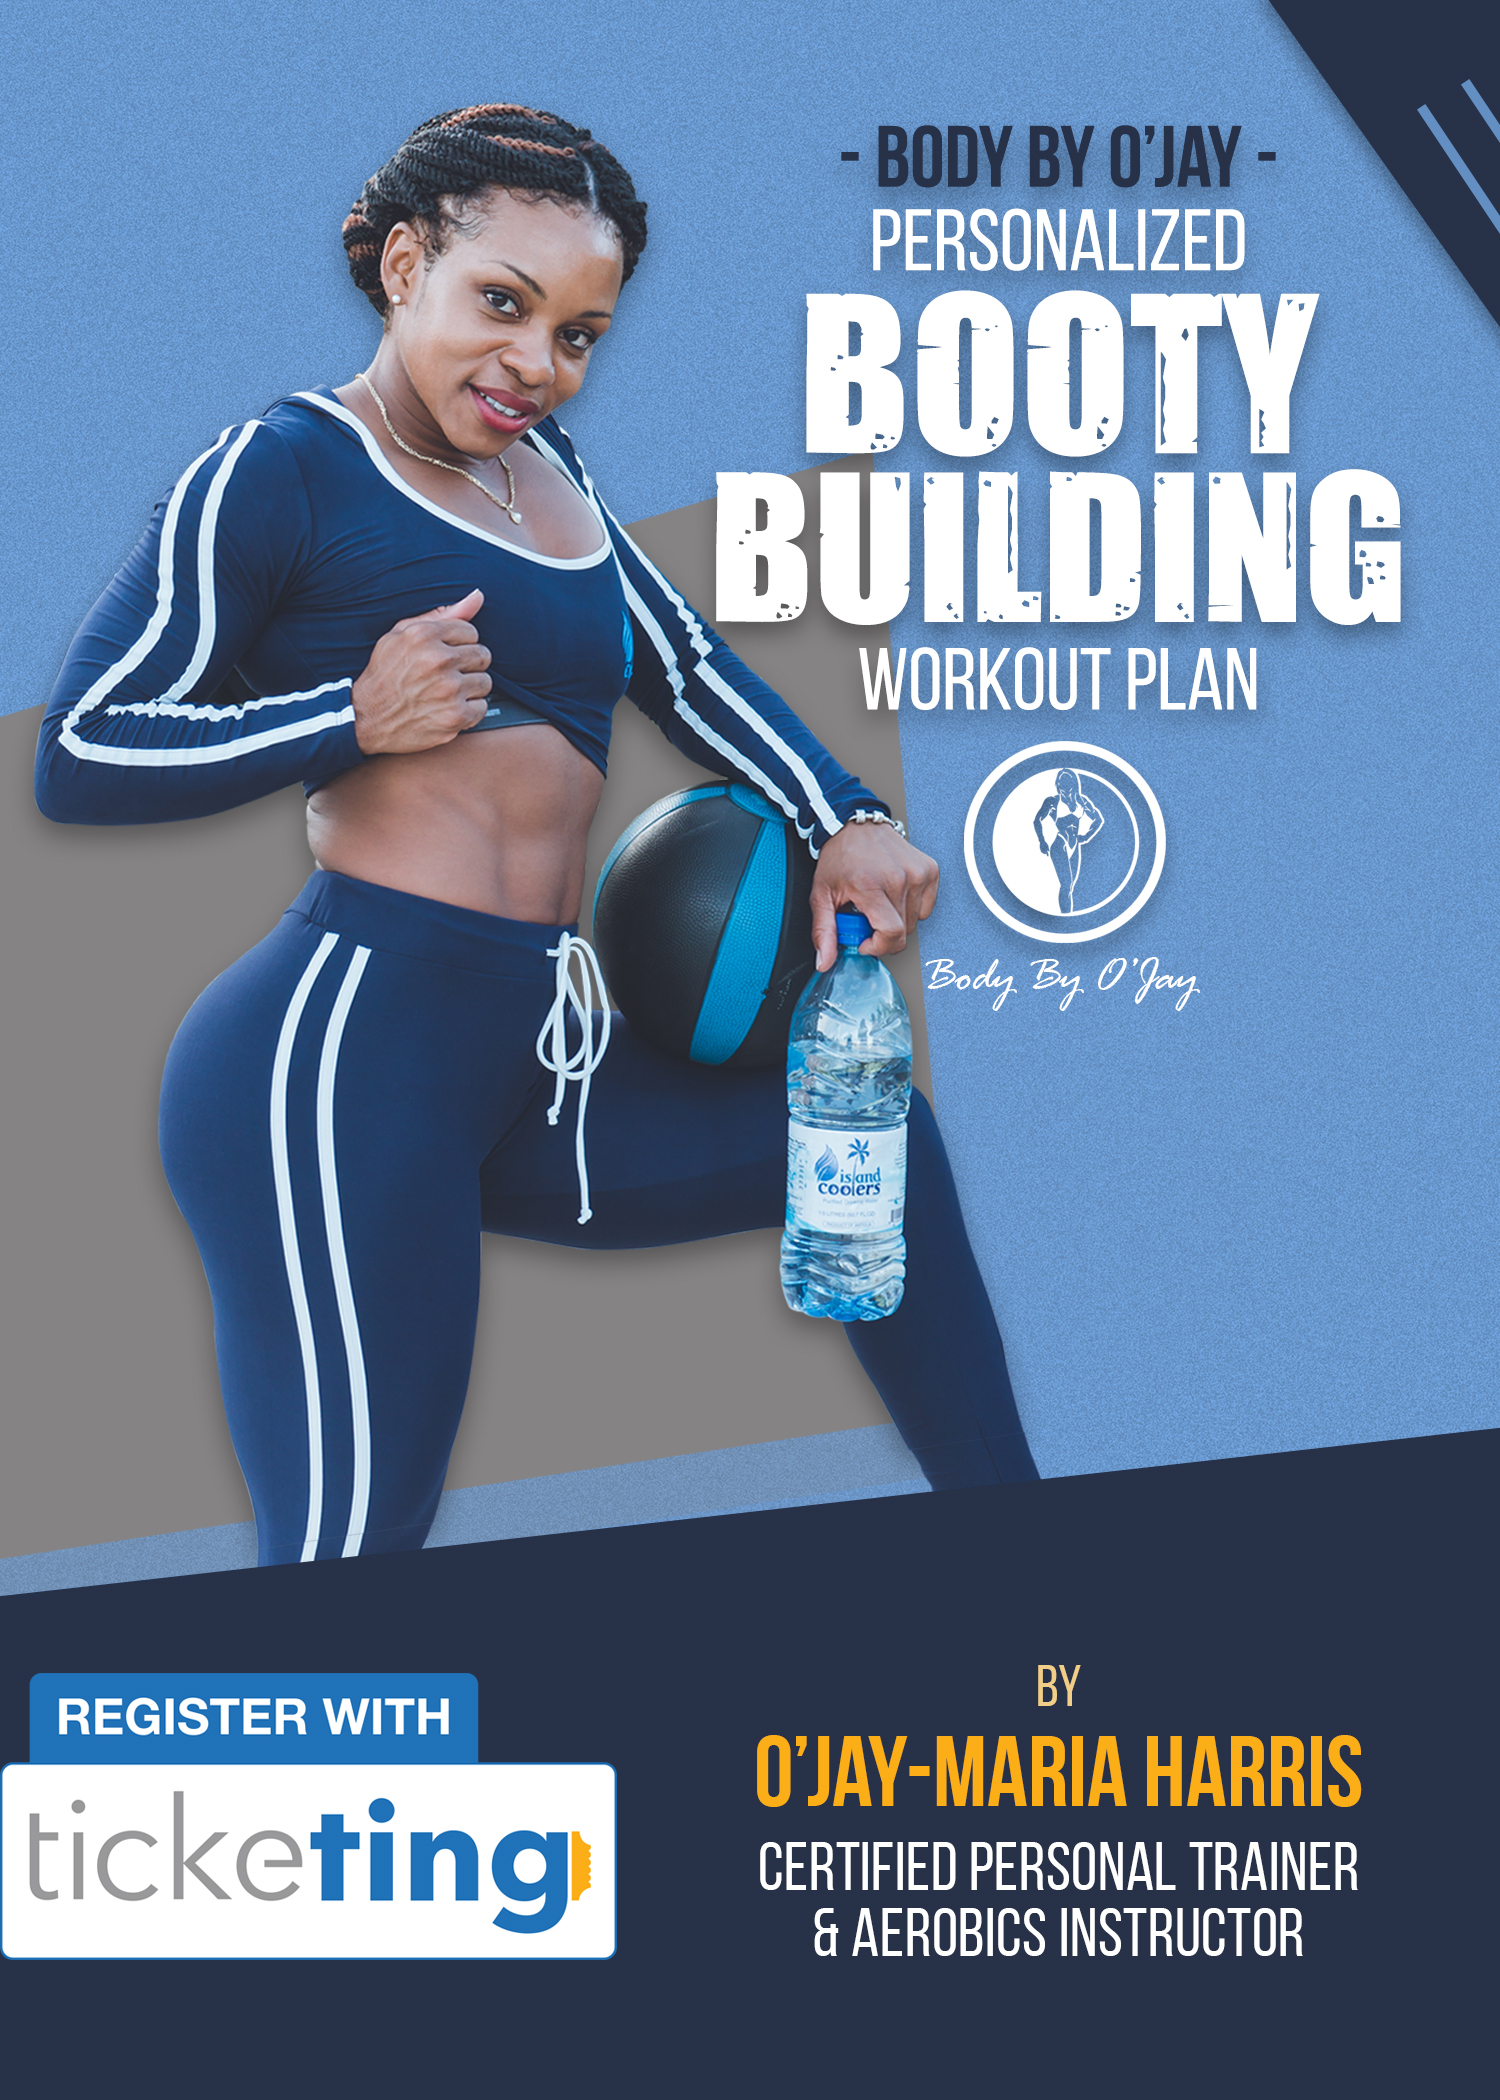 Personalized Booty Building Workout Plan 5x7in Flyer.jpg